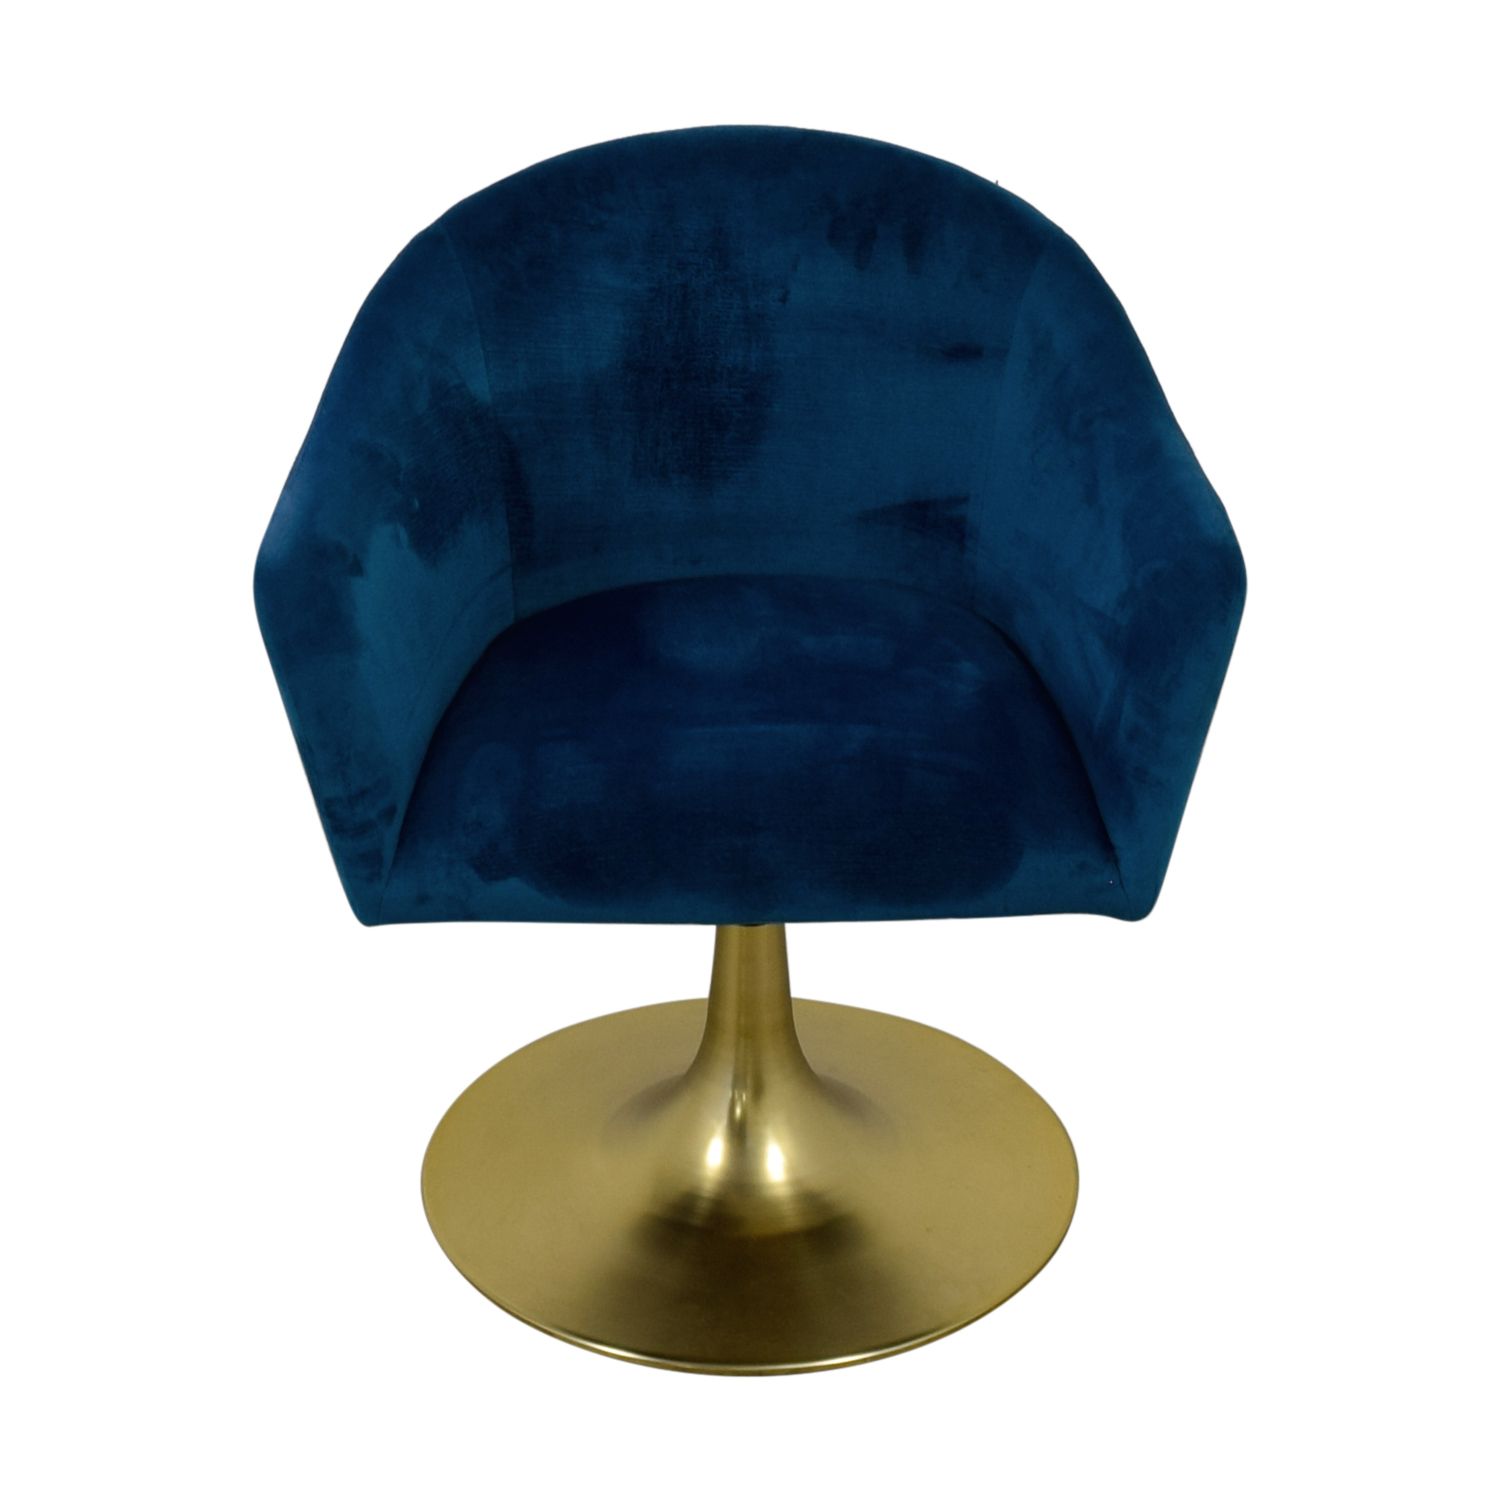 West Elm West Elm Bond Blue Velvet Swivel Chair dimensions